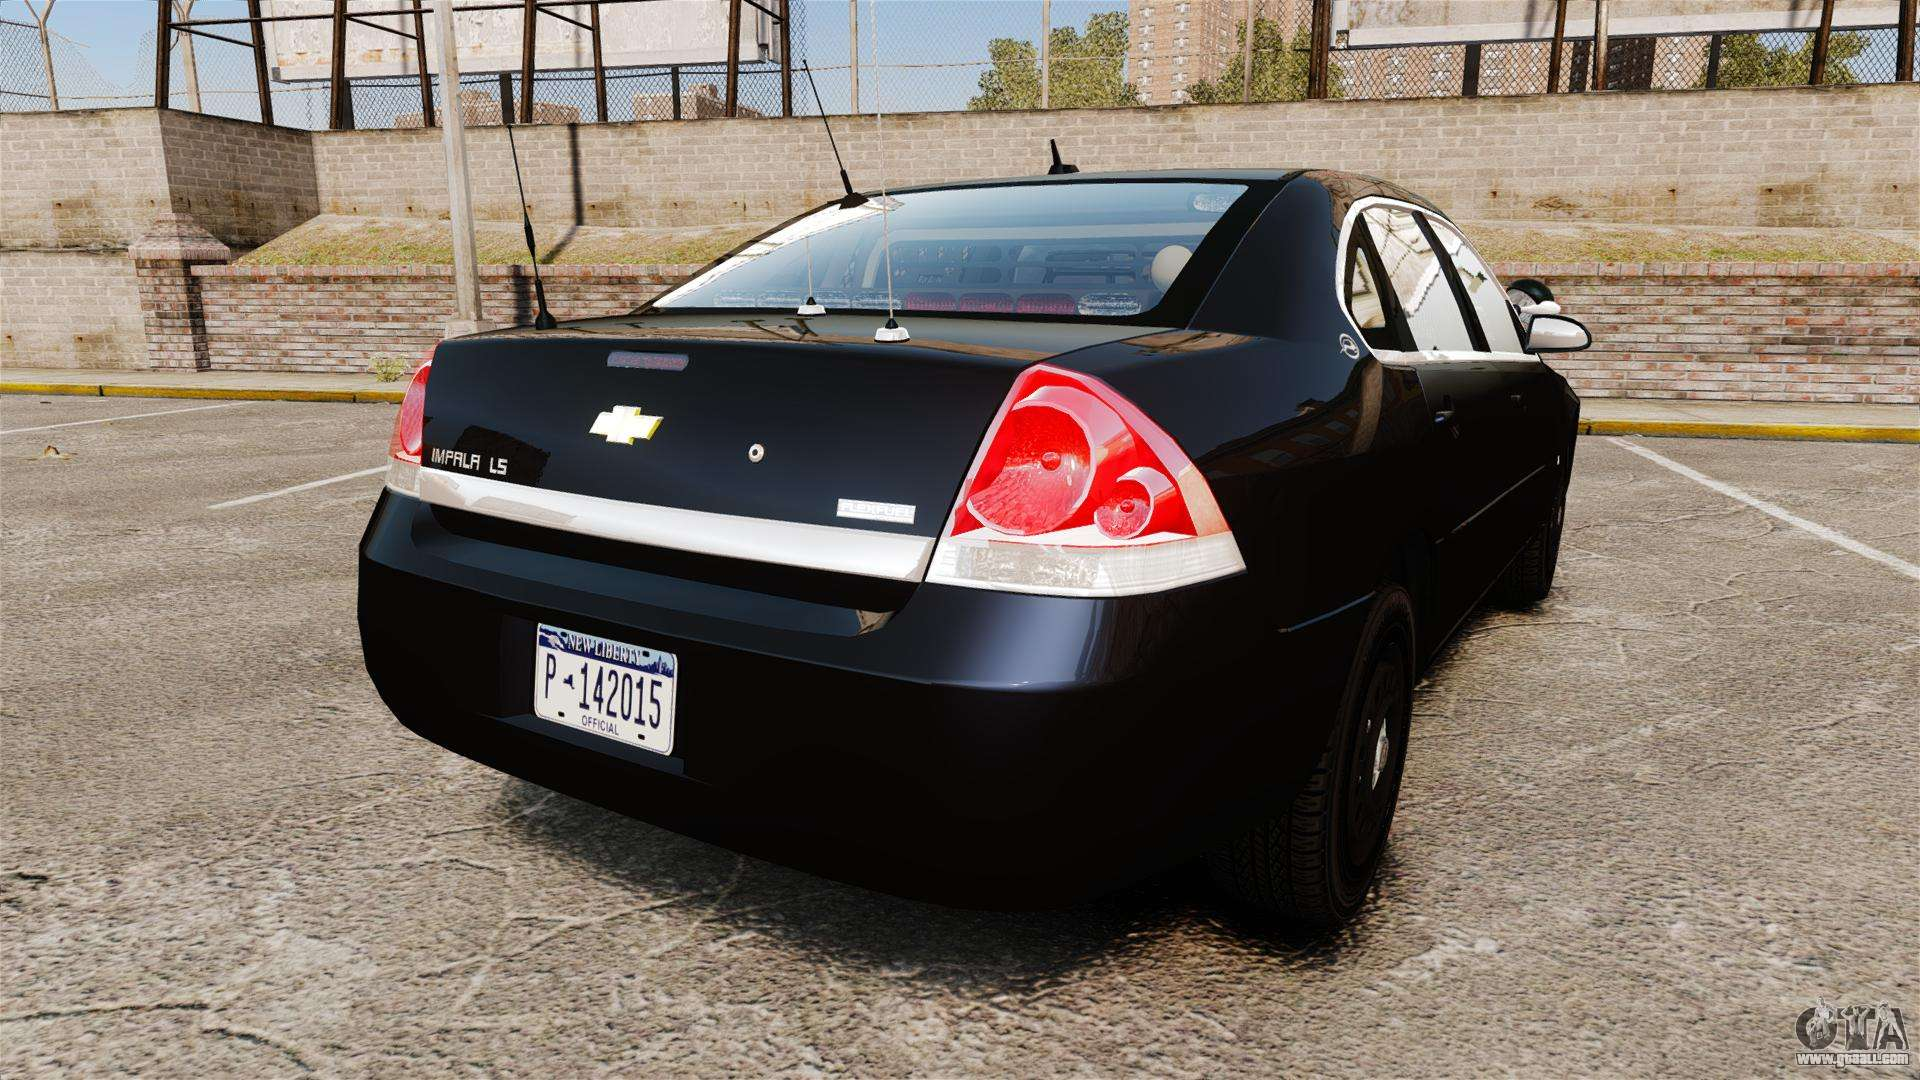 Chevrolet impala 2010 ls unmarked k9 unit els for gta 4 back left view